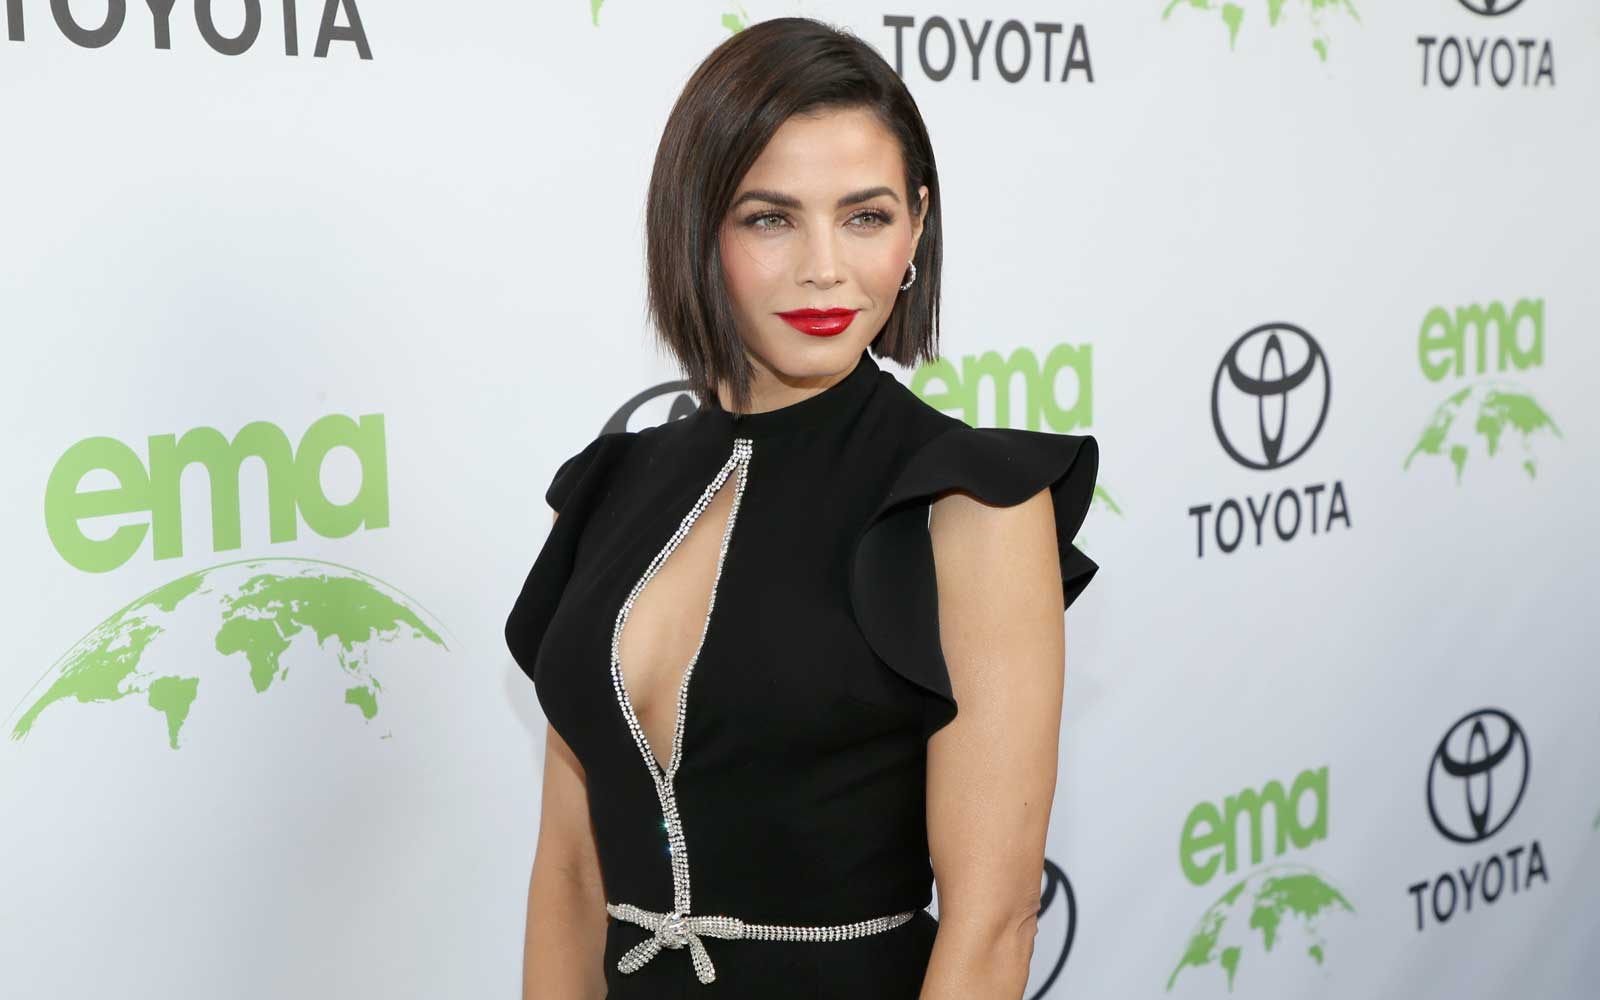 Try the Hotel Room Workout Jenna Dewan Does When She's Short on Time